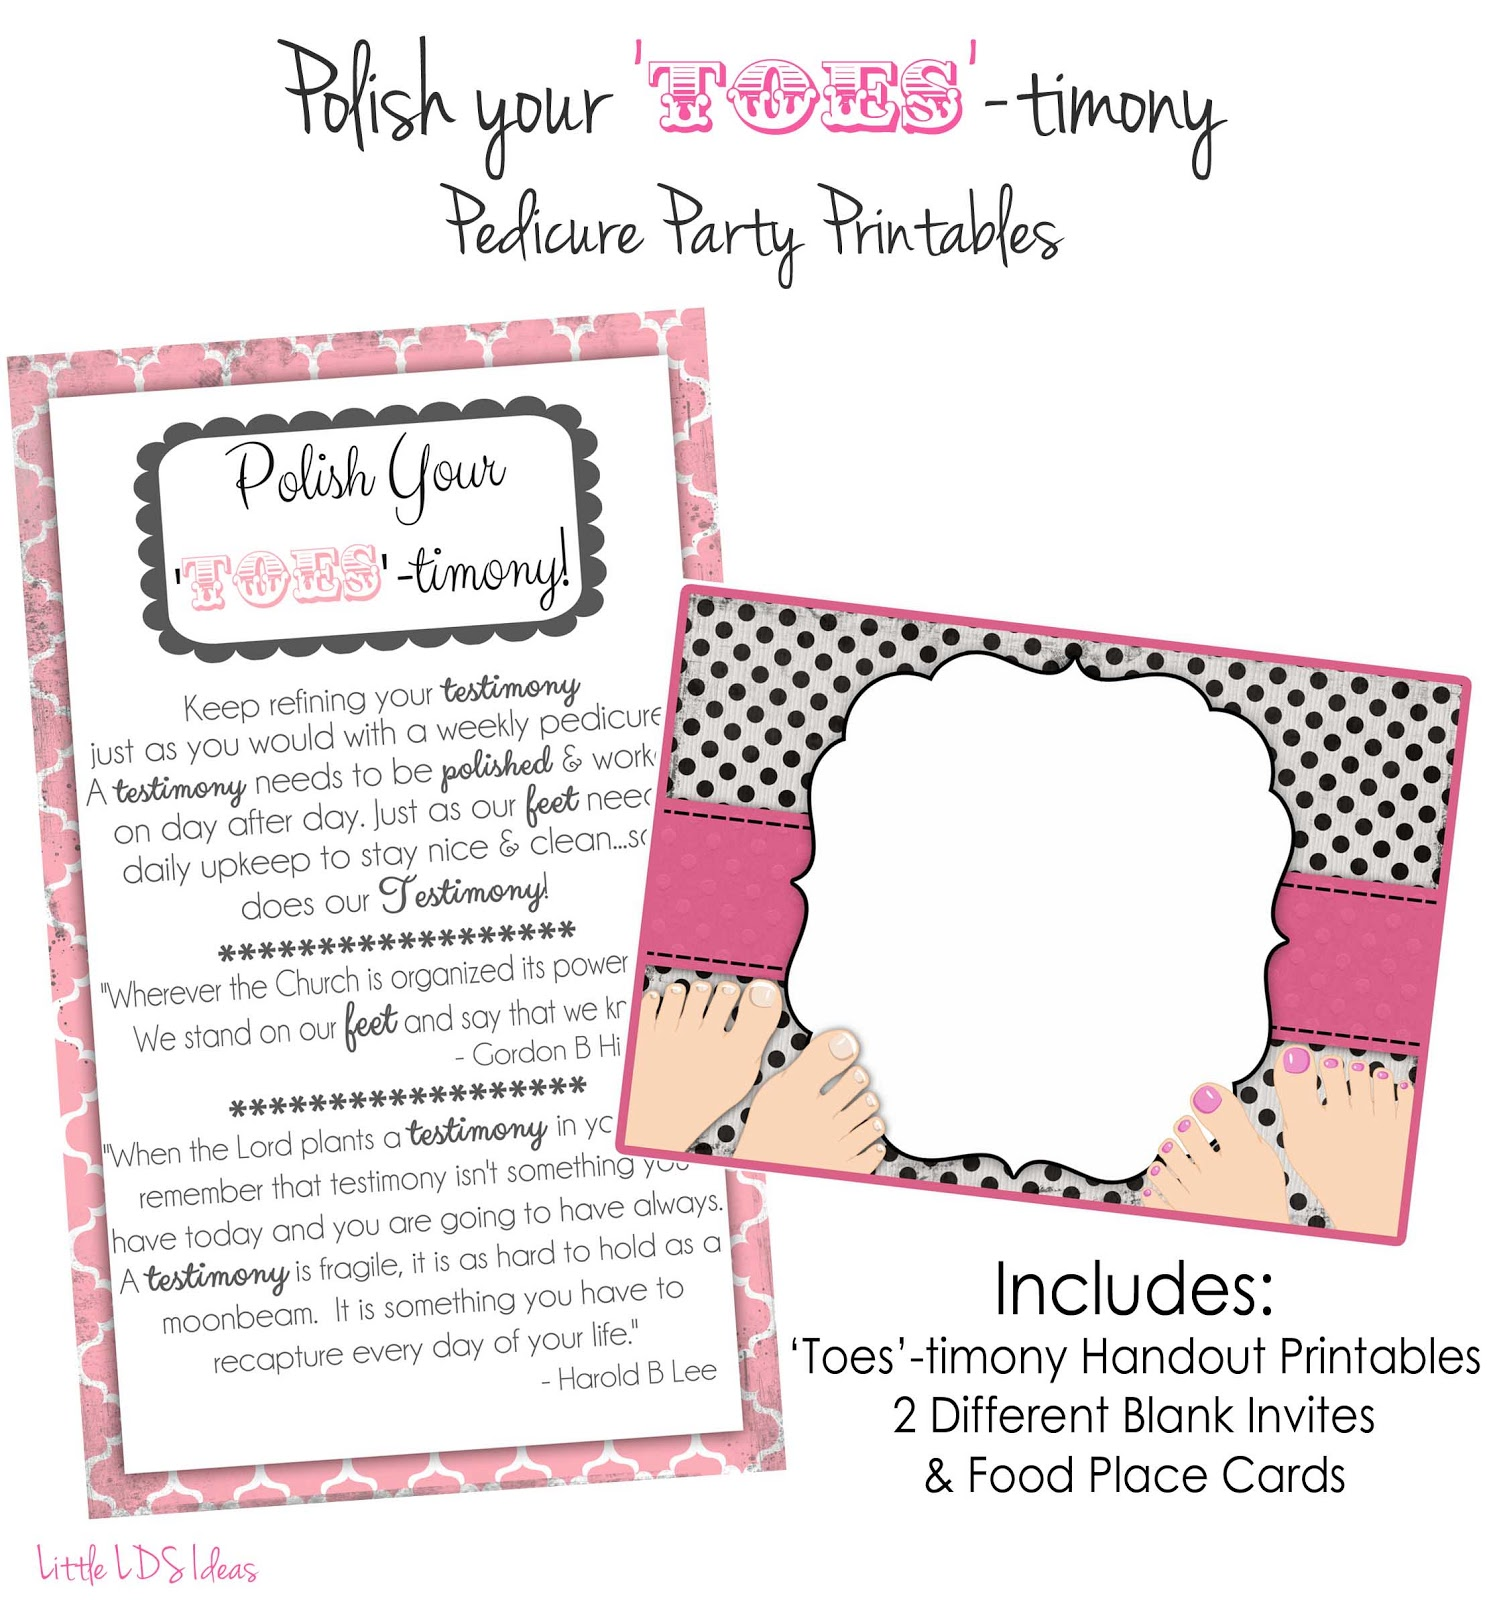 RS Activity Idea Polish Your Toestimony Pedicure Party – Pedicure Party Invitations